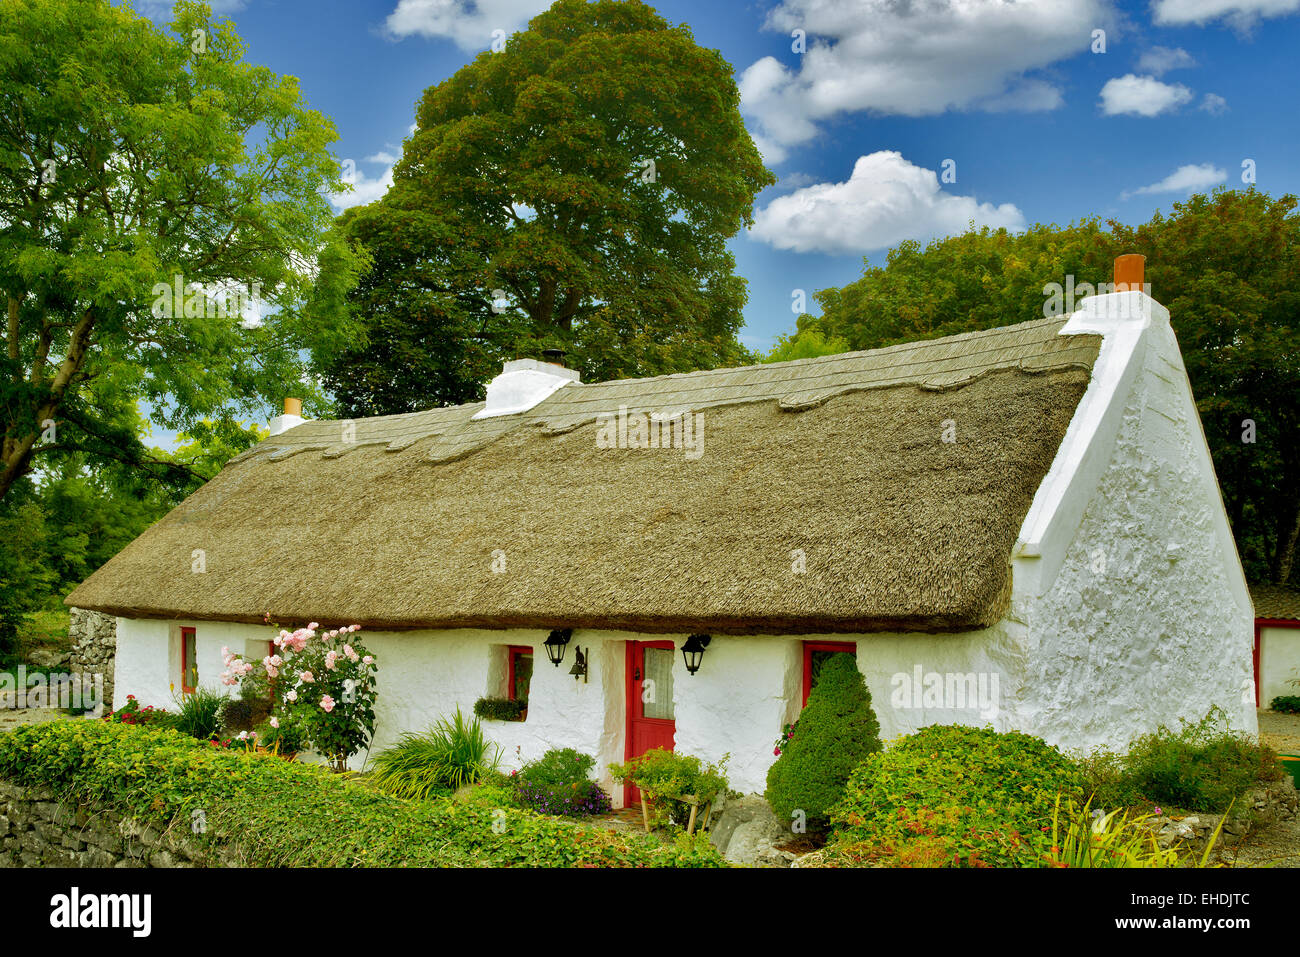 Irish cottage con tetto in paglia. Oughterard, Irlanda Immagini Stock